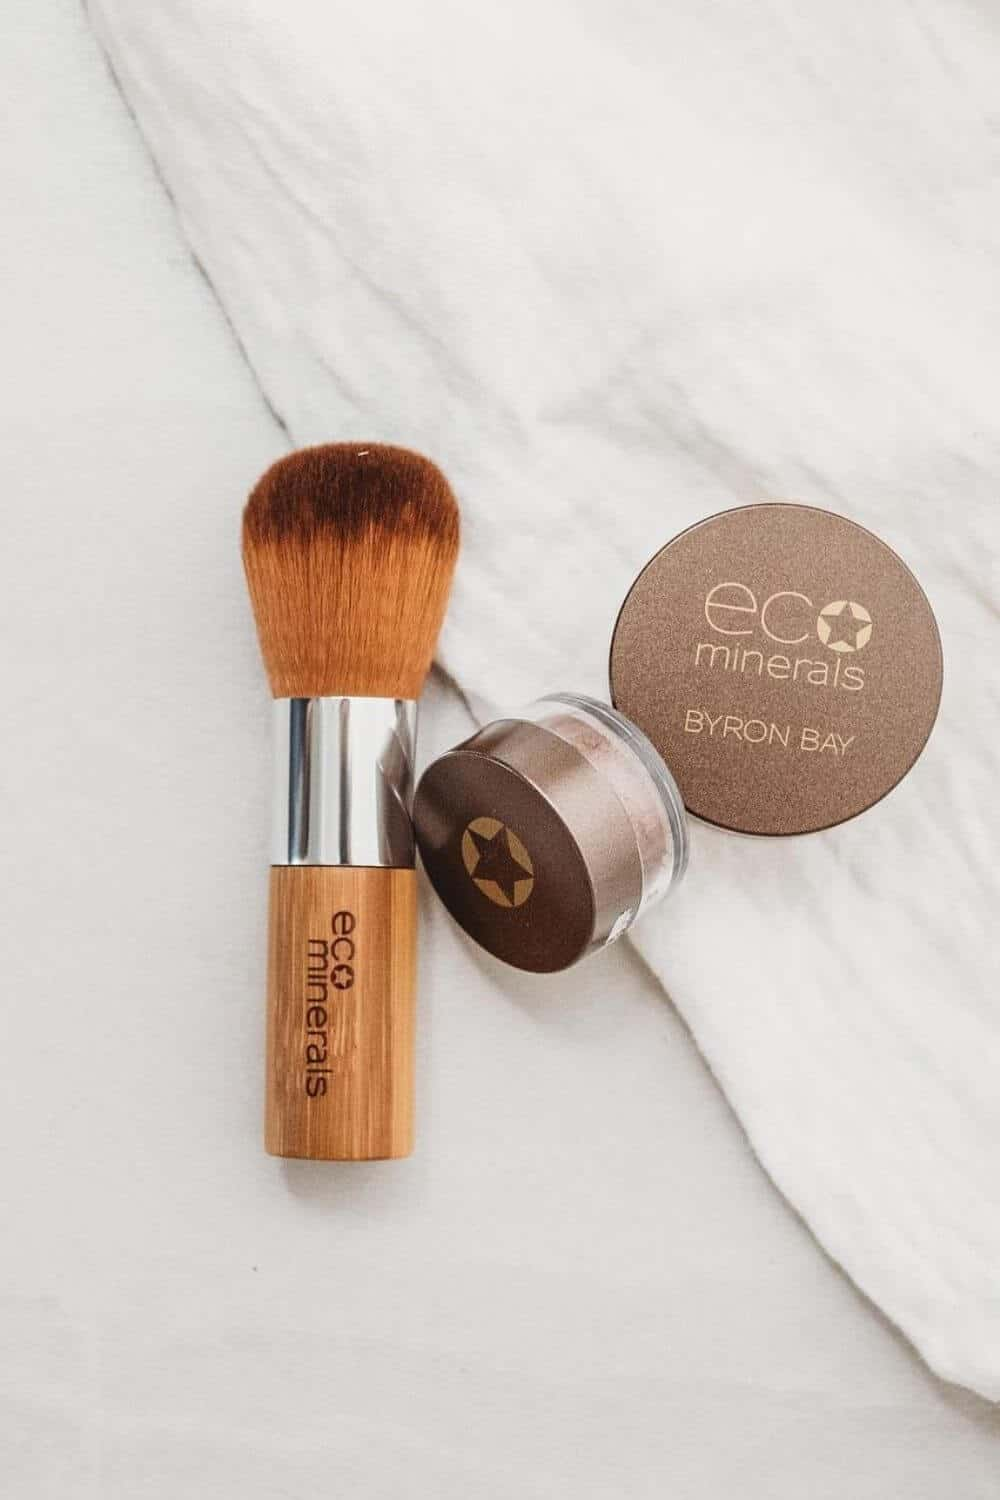 Finding zero waste makeup alternatives is no easy feat, because traditional containers are difficult (at best) to recycle, being often comprised of composite materials and components Image by Eco Minerals #zerowastemakeup